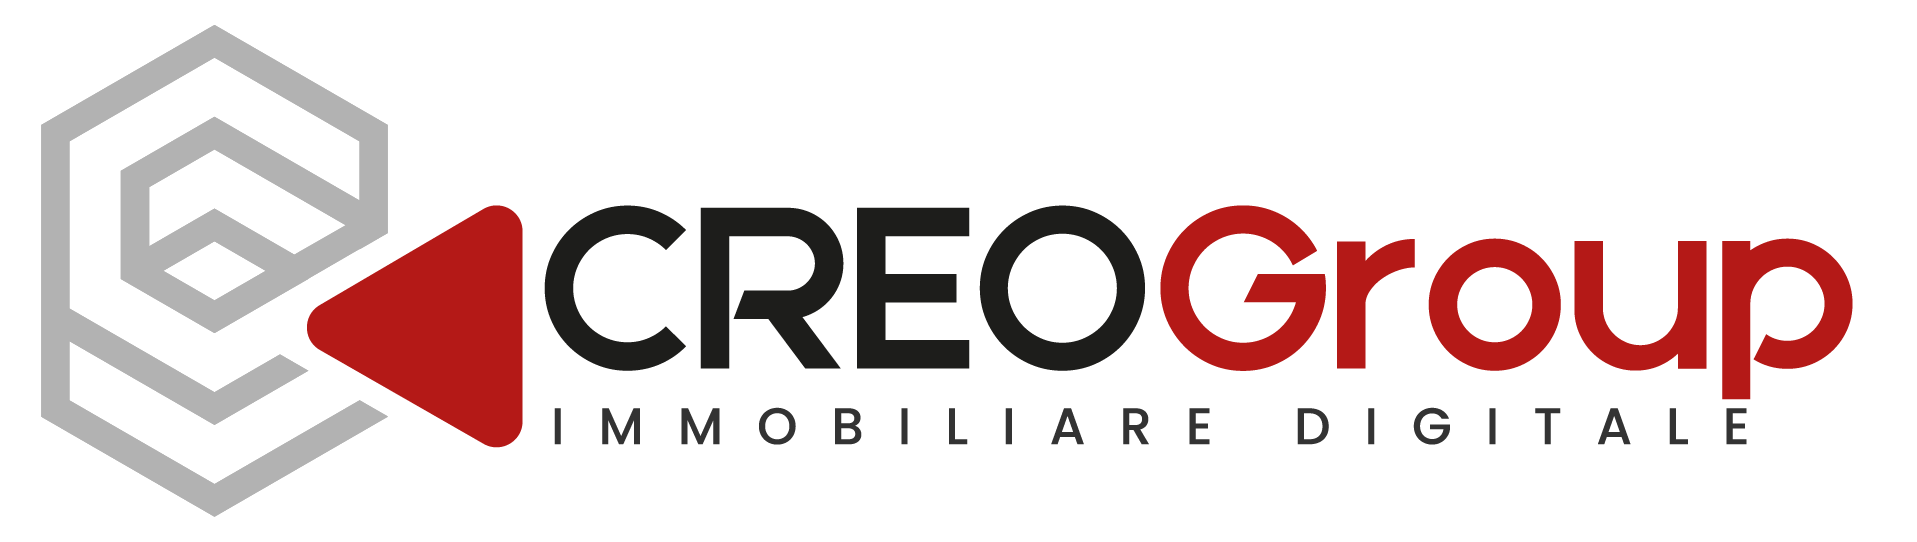 Creo Group